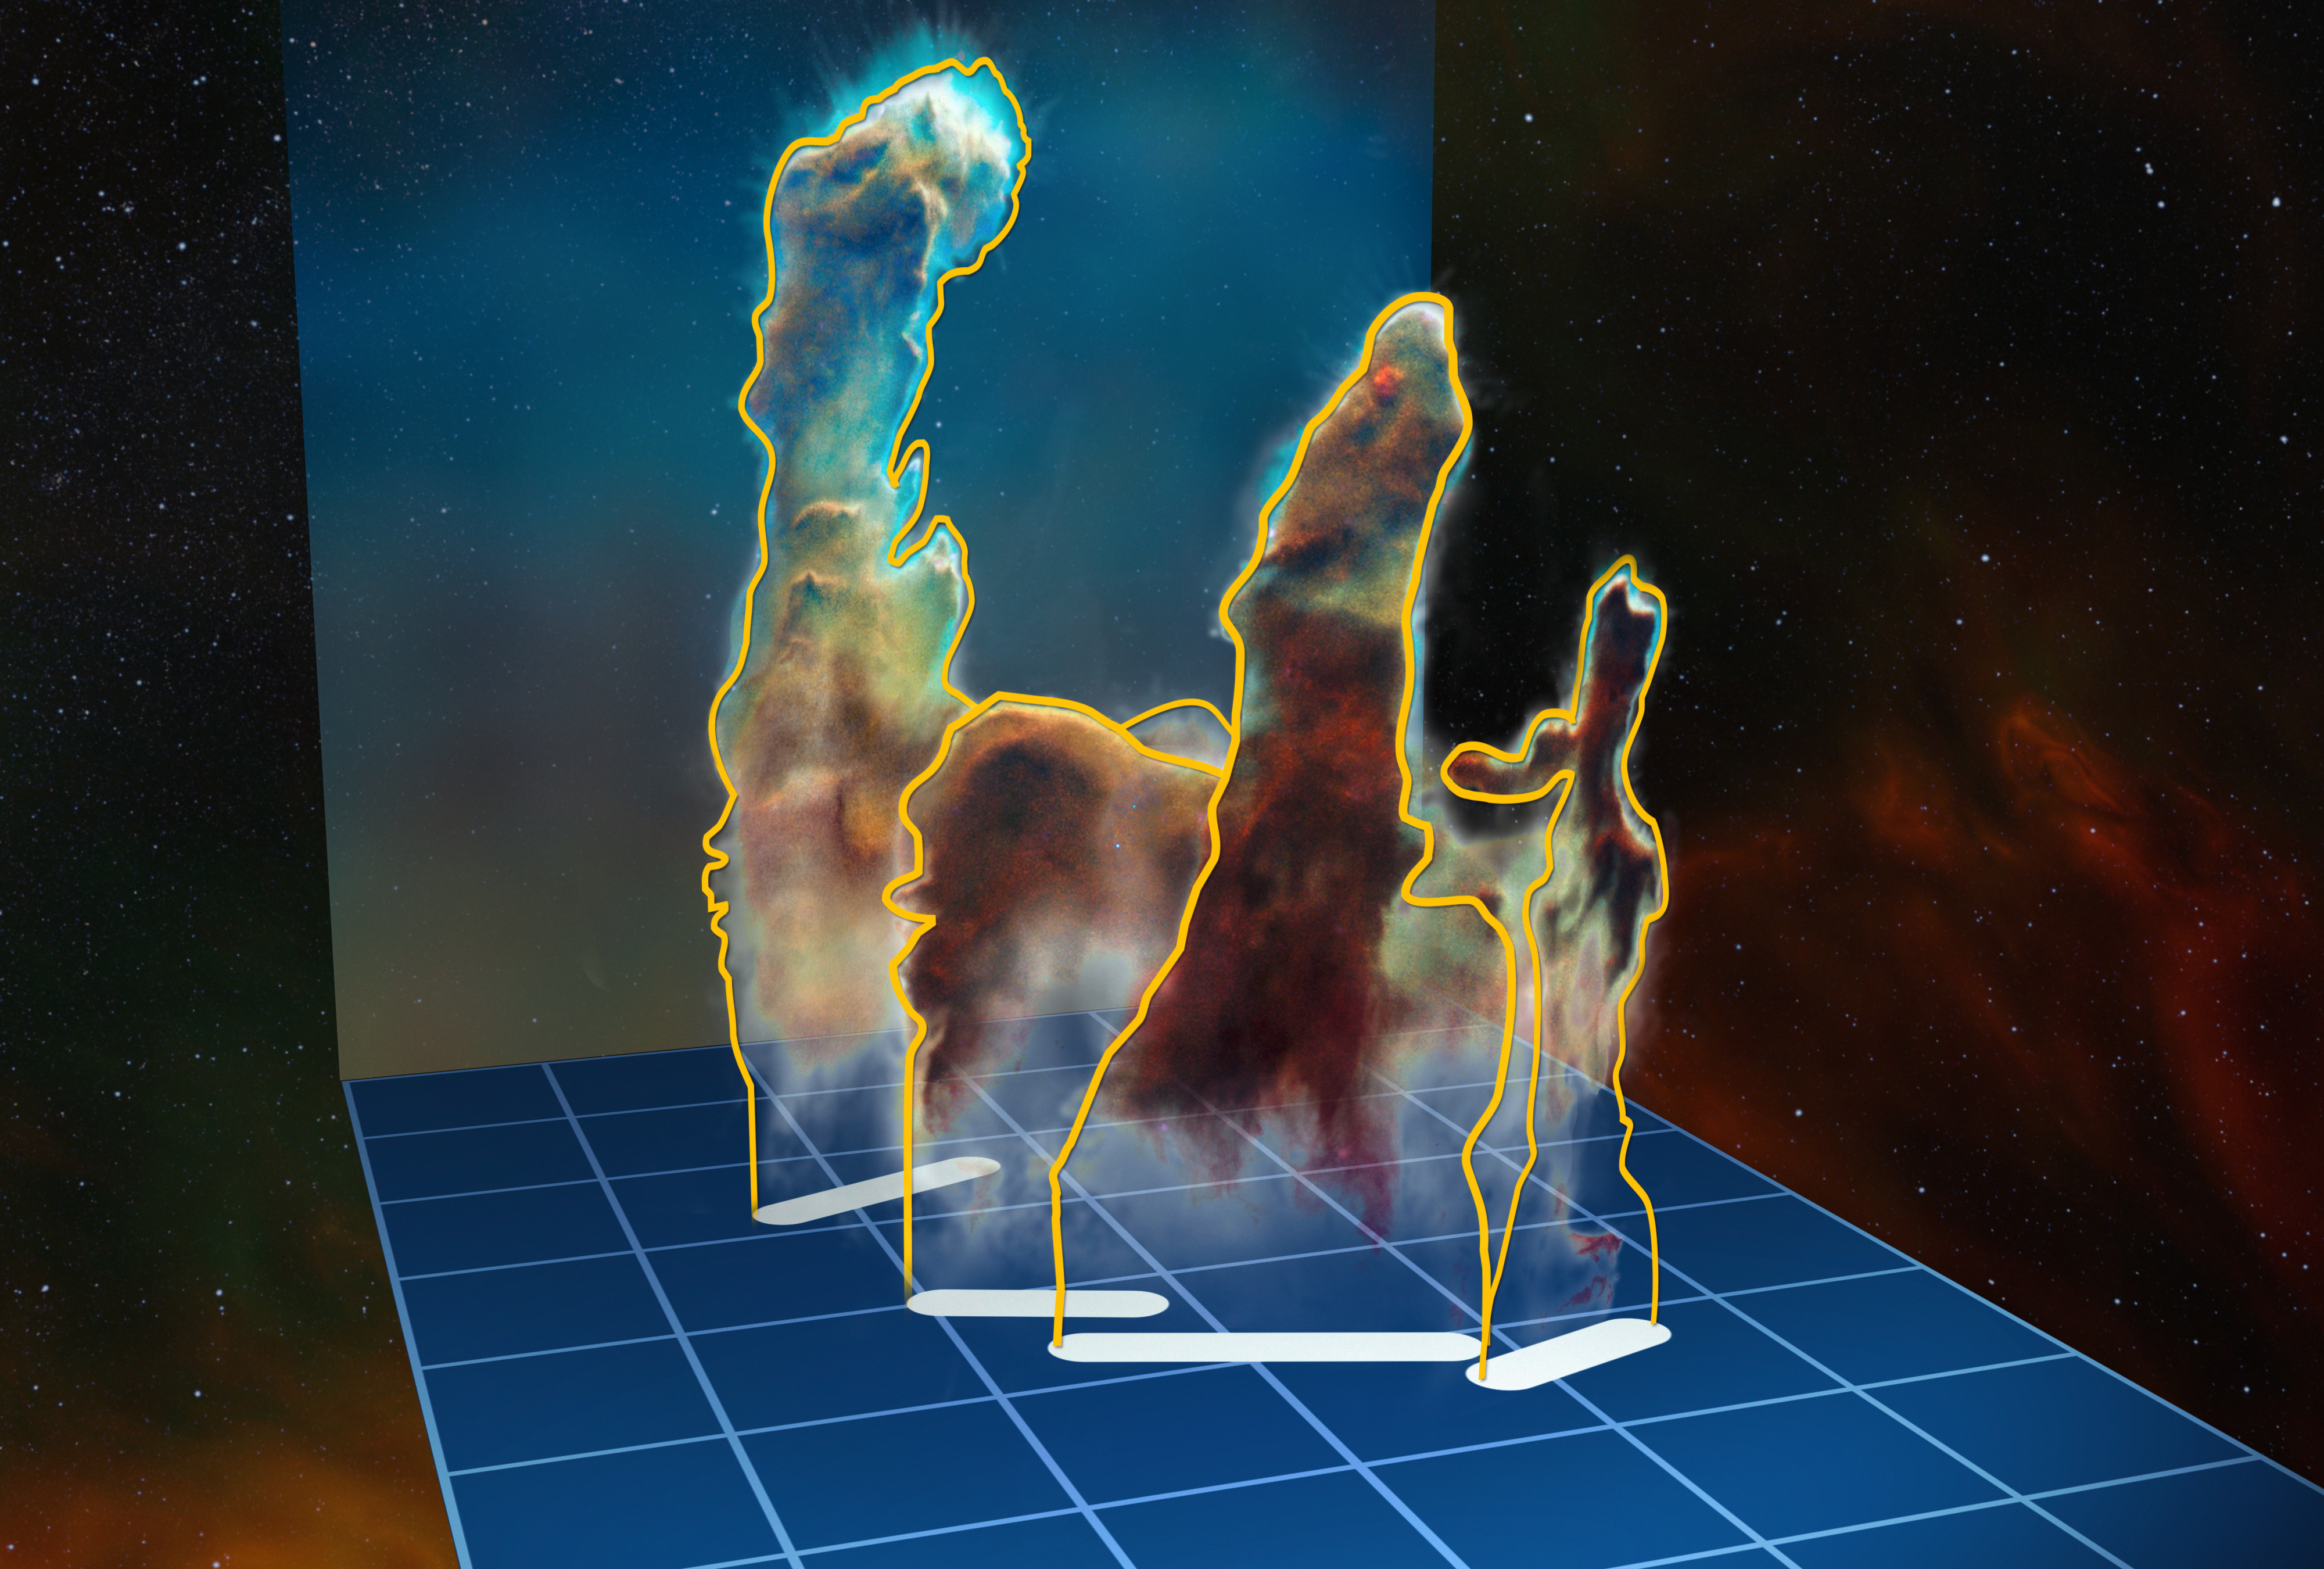 This visualisation of the three-dimensional structure of the Pillars of Creation within the star formation region Messier 16 (also called the Eagle Nebula) is based on new observations of the object using the MUSE instrument on ESO's Very Large Telescope in Chile. The pillars actually consist of several distinct pieces on either side of the star cluster NGC 6611. In this illustration, the relative distance between the pillars along the line of sight is not to scale. Credit: ESO/M. Kornmesser